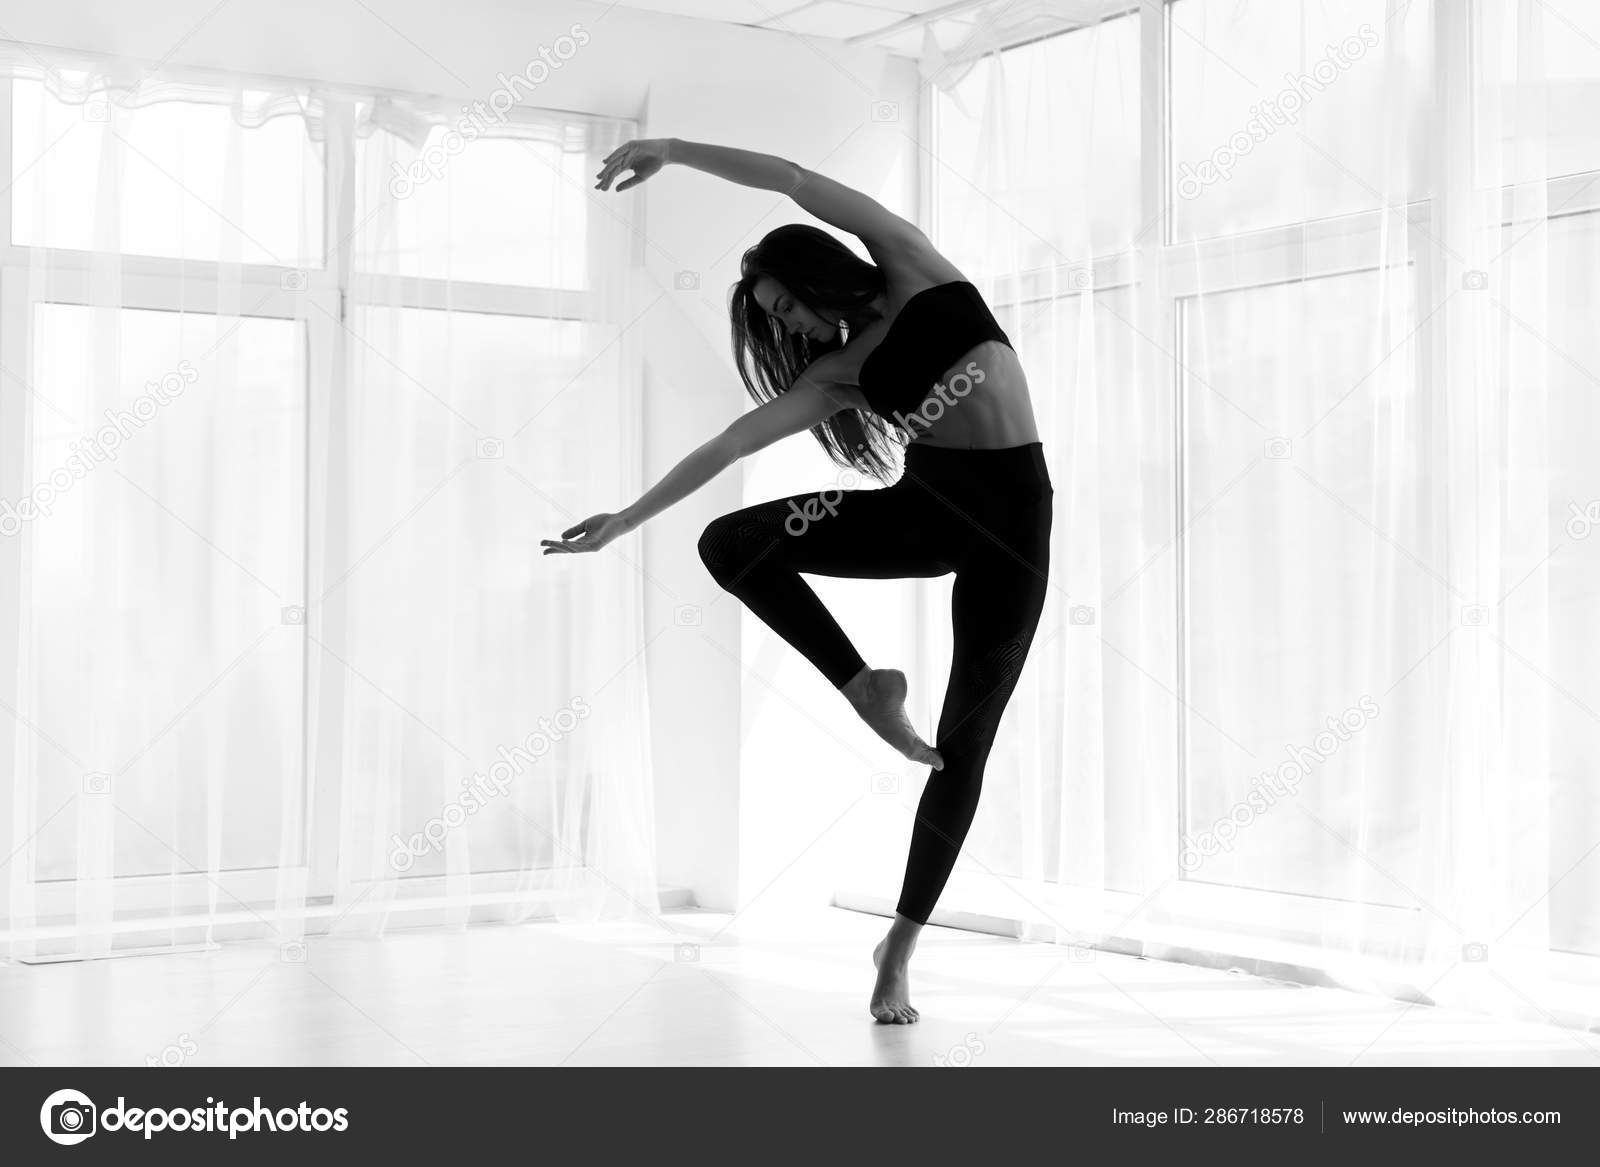 Dancer Training Modern Ballet In Studio Black And White Stock Photo C Milkos 286718578